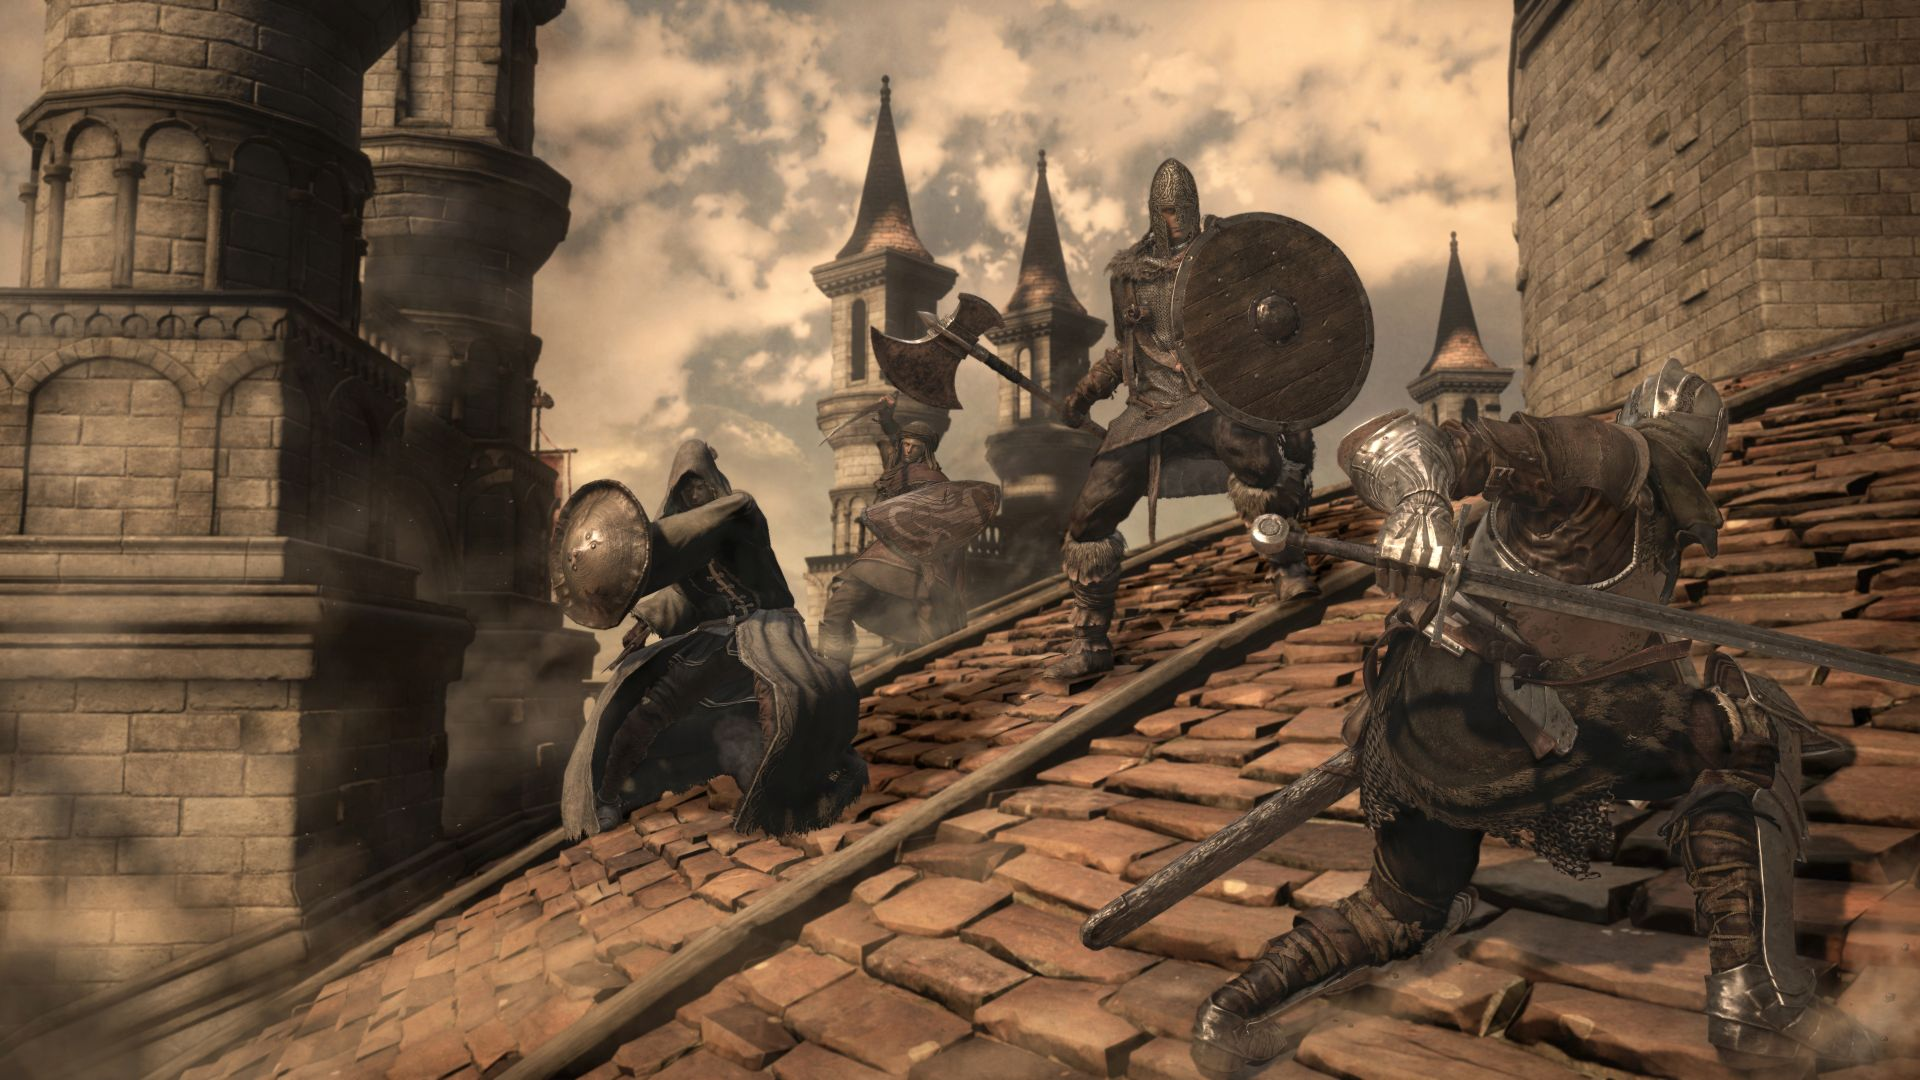 Dark Souls 3's final DLC, The Ringed City, revealed